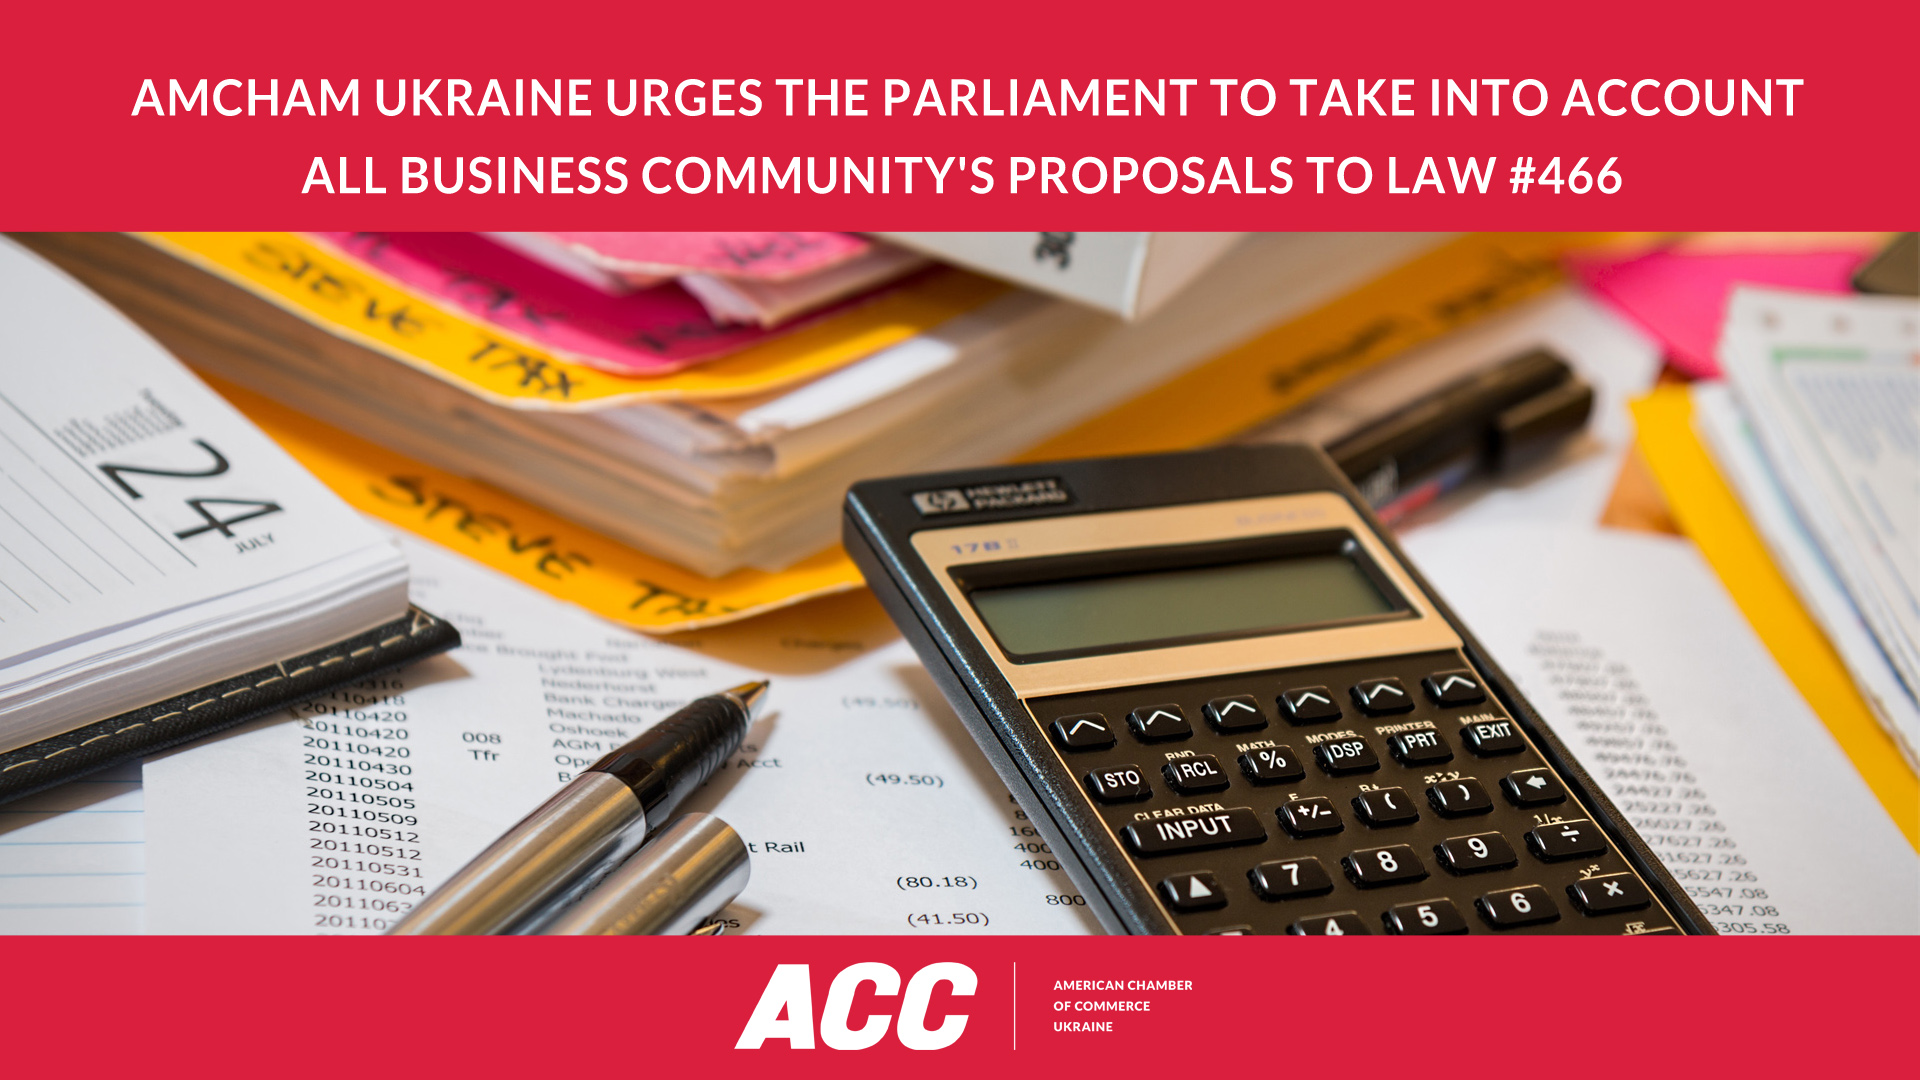 The American Chamber of Commerce in Ukraine Urges the Parliament to Take into Account All Business Community's Proposals to Law #466